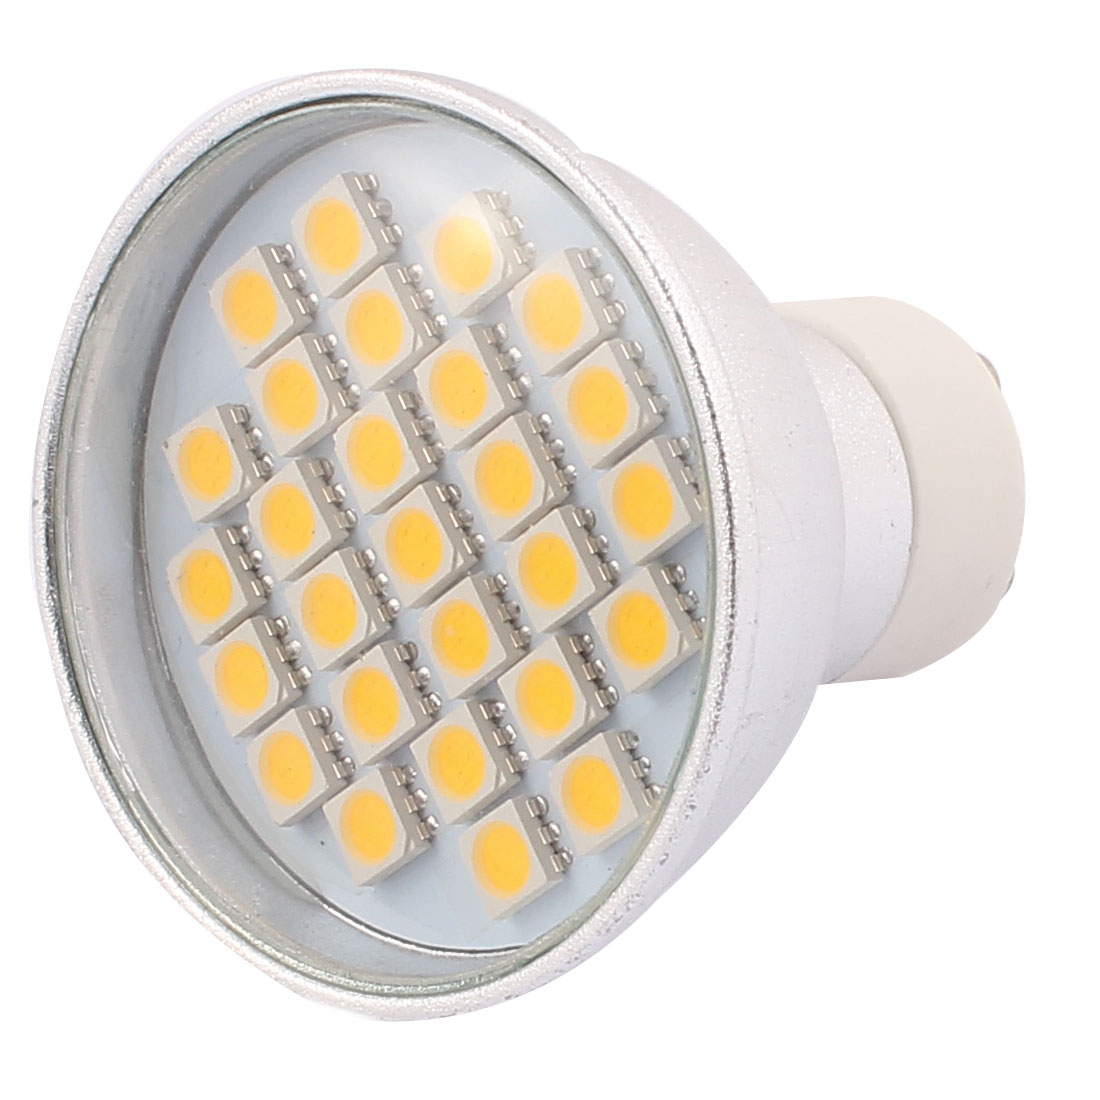 220V GU10 LED Light 4W 5050 SMD 27 LEDs Spotlight Down Lamp Bulb Energy Saving Warm White